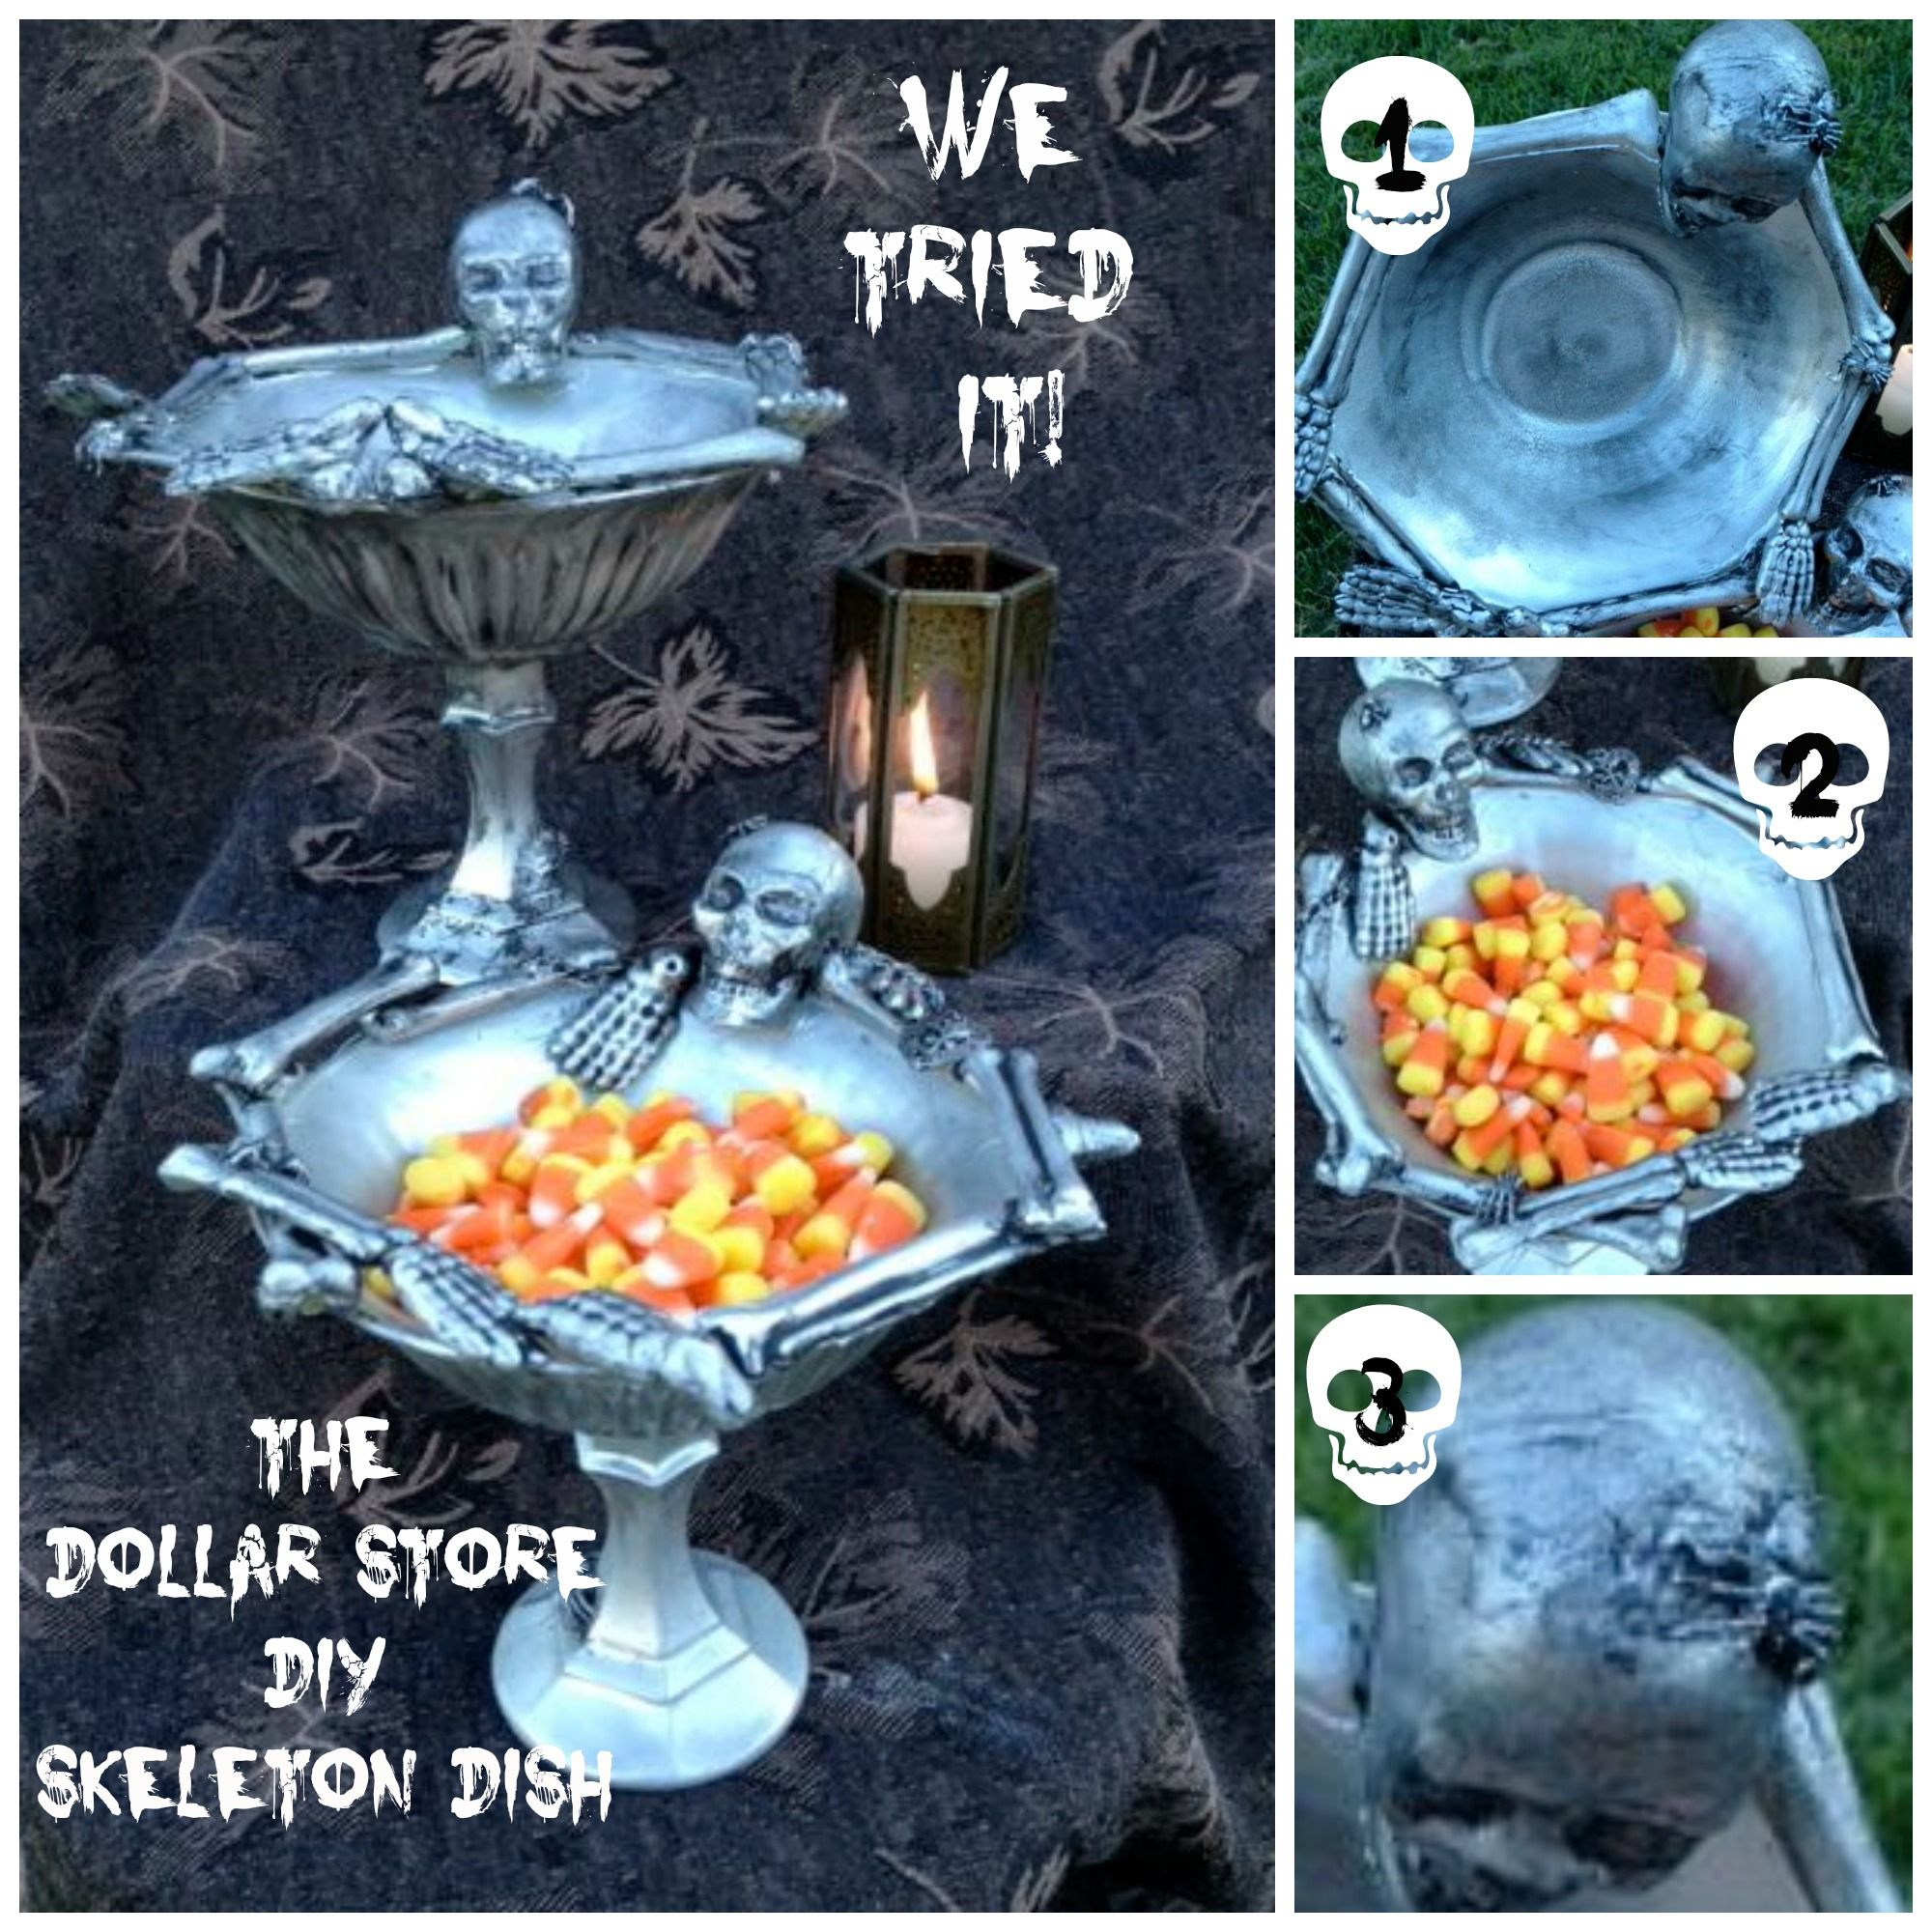 DIY Dollar Store Skeleton Dish. Halloween hacks